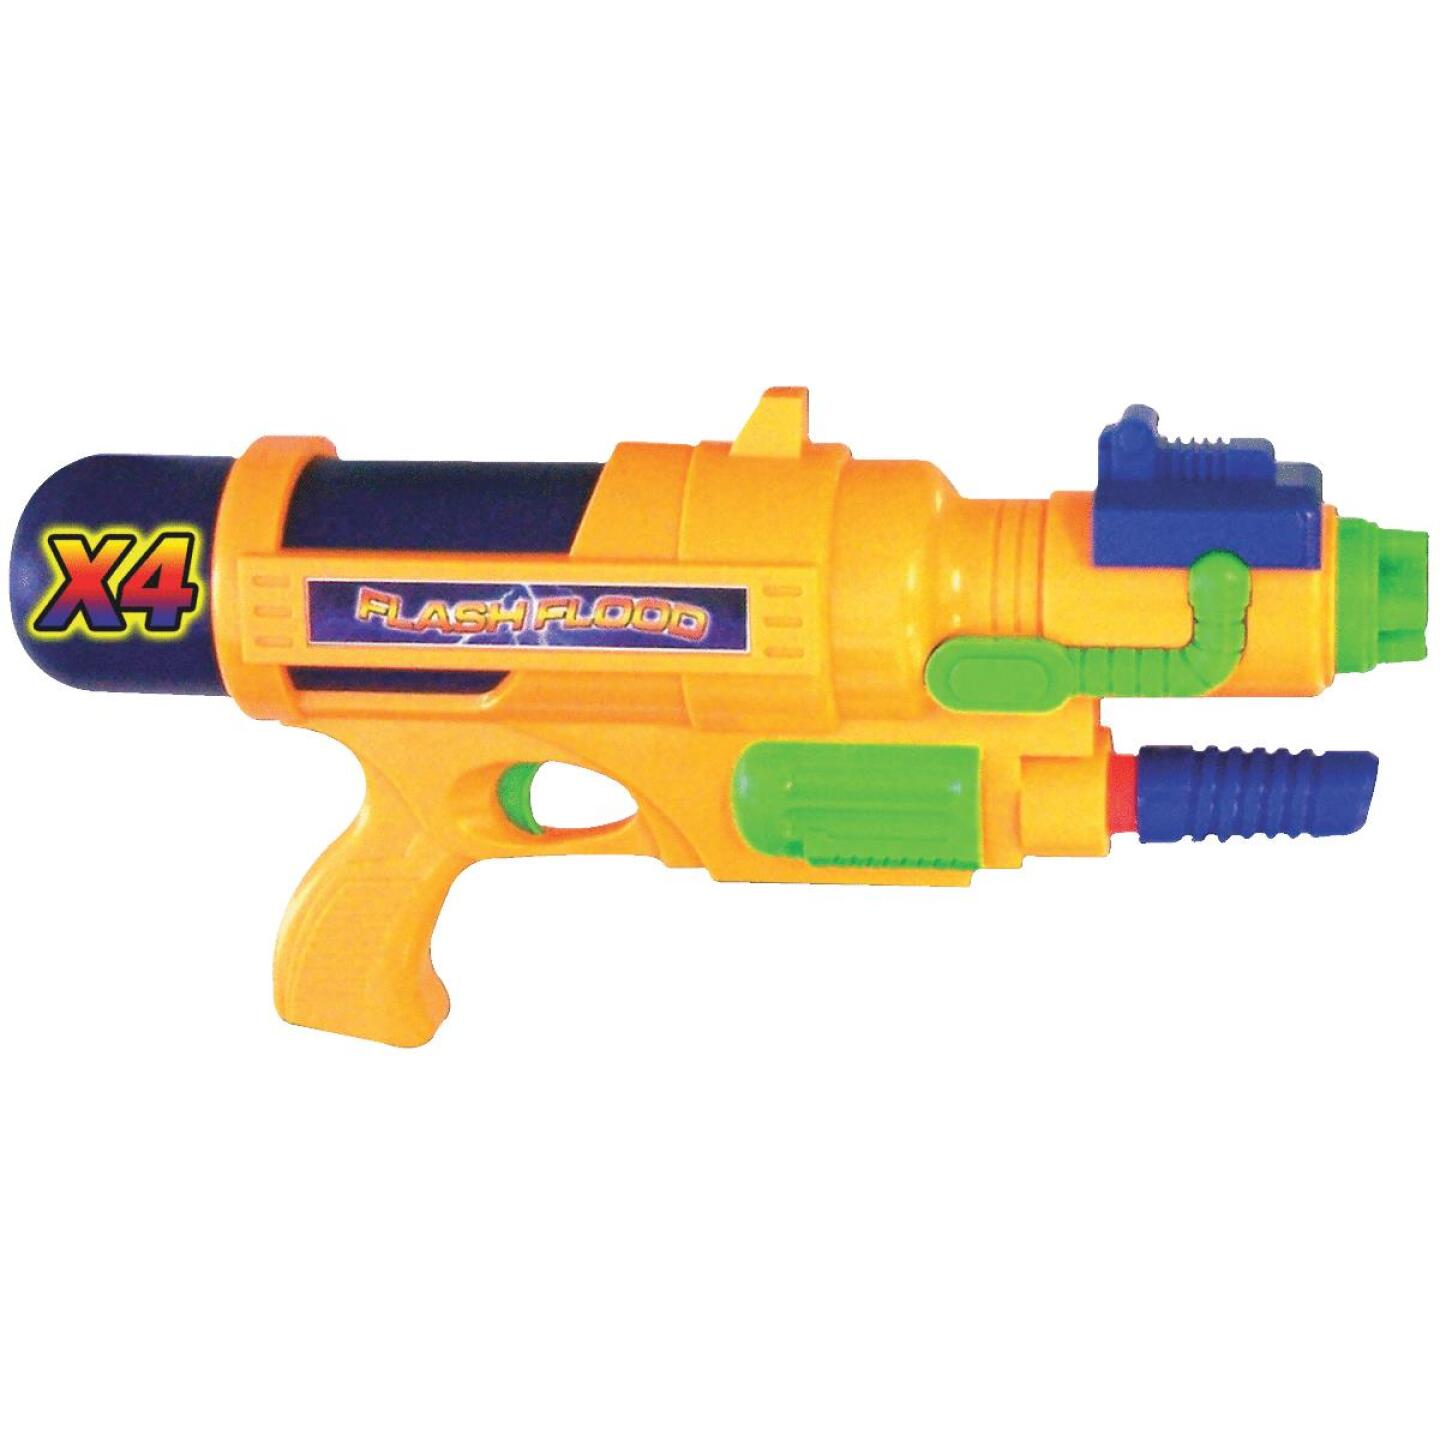 Water Sports CSG X4 17 In. Medium Water Gun Image 1